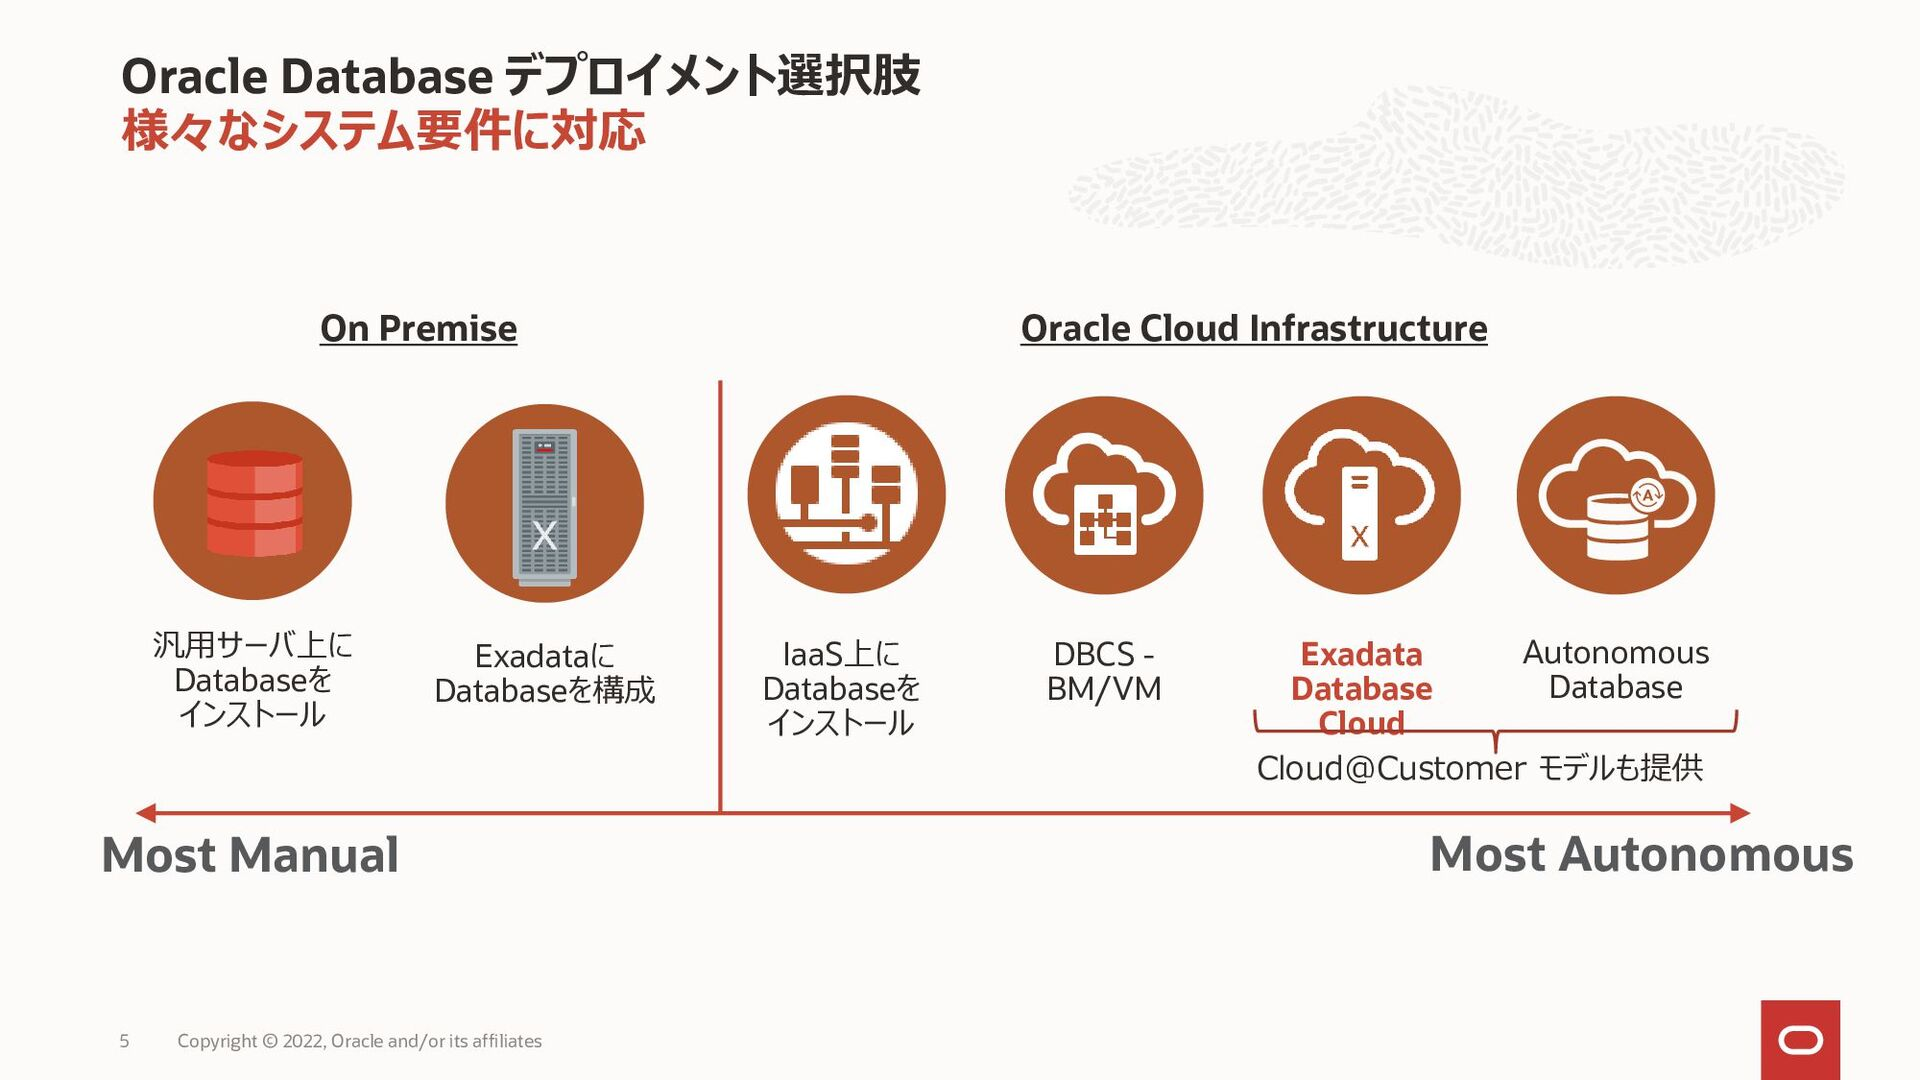 Oracle Cloud Infrastructure の利点 「オンプレミス」と「パブリック...